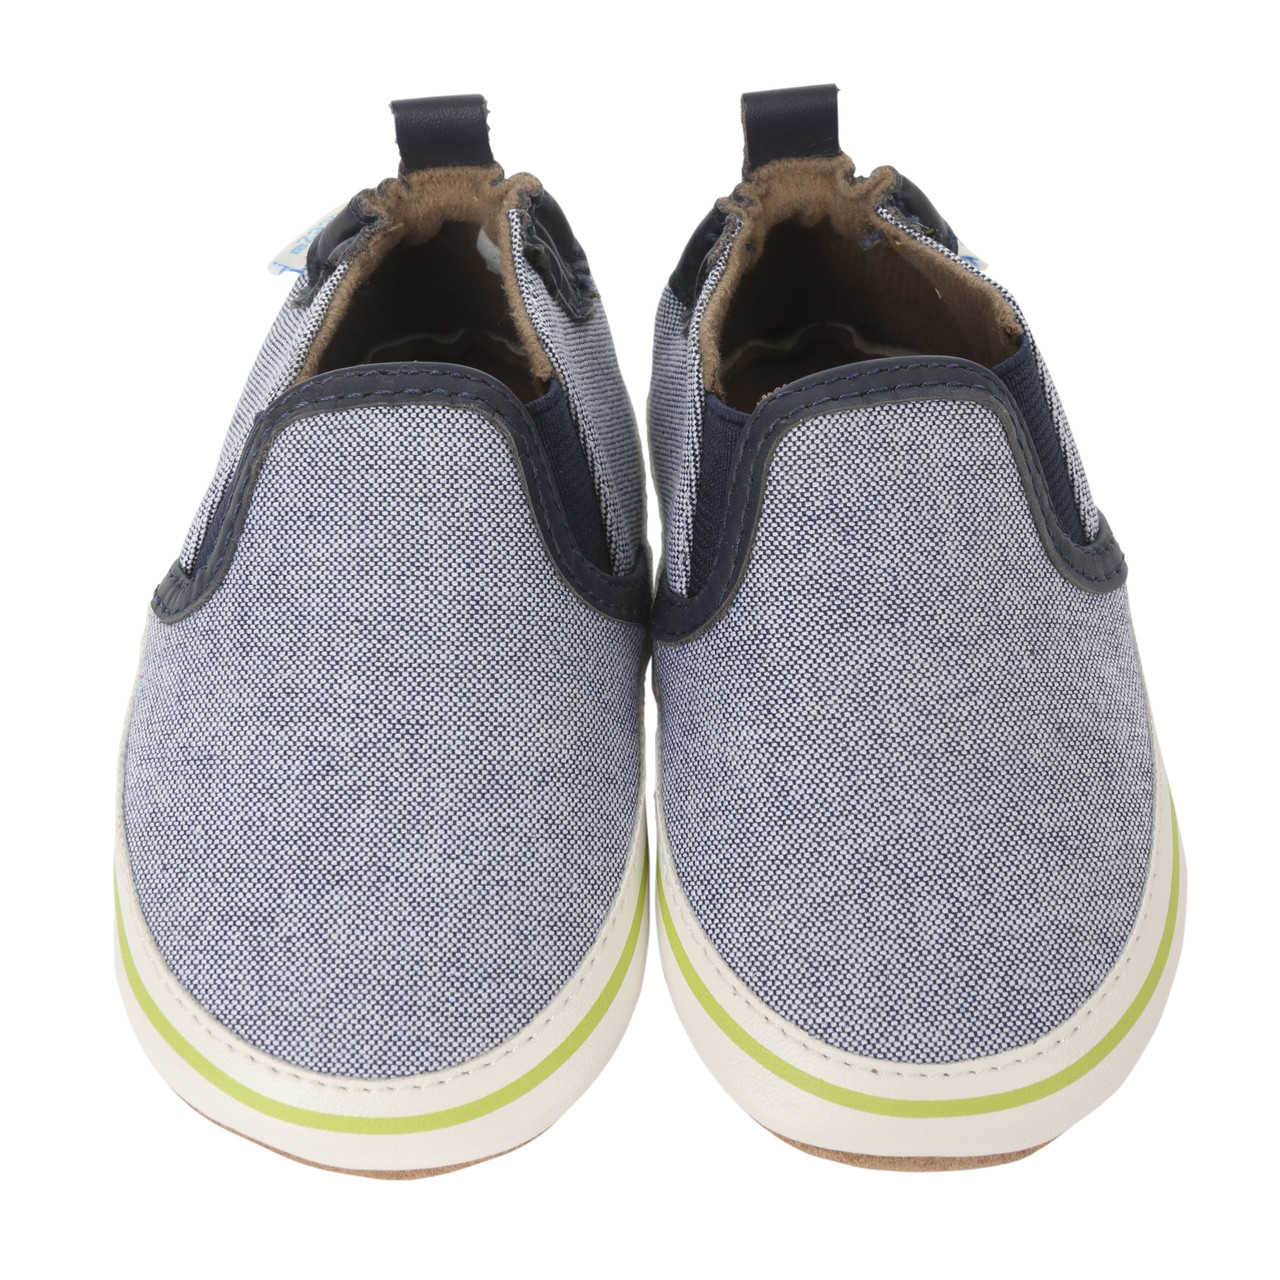 Navy canvas soft soled baby shoes with white PU trim.  Designed to look like Dad's casual sneakers.